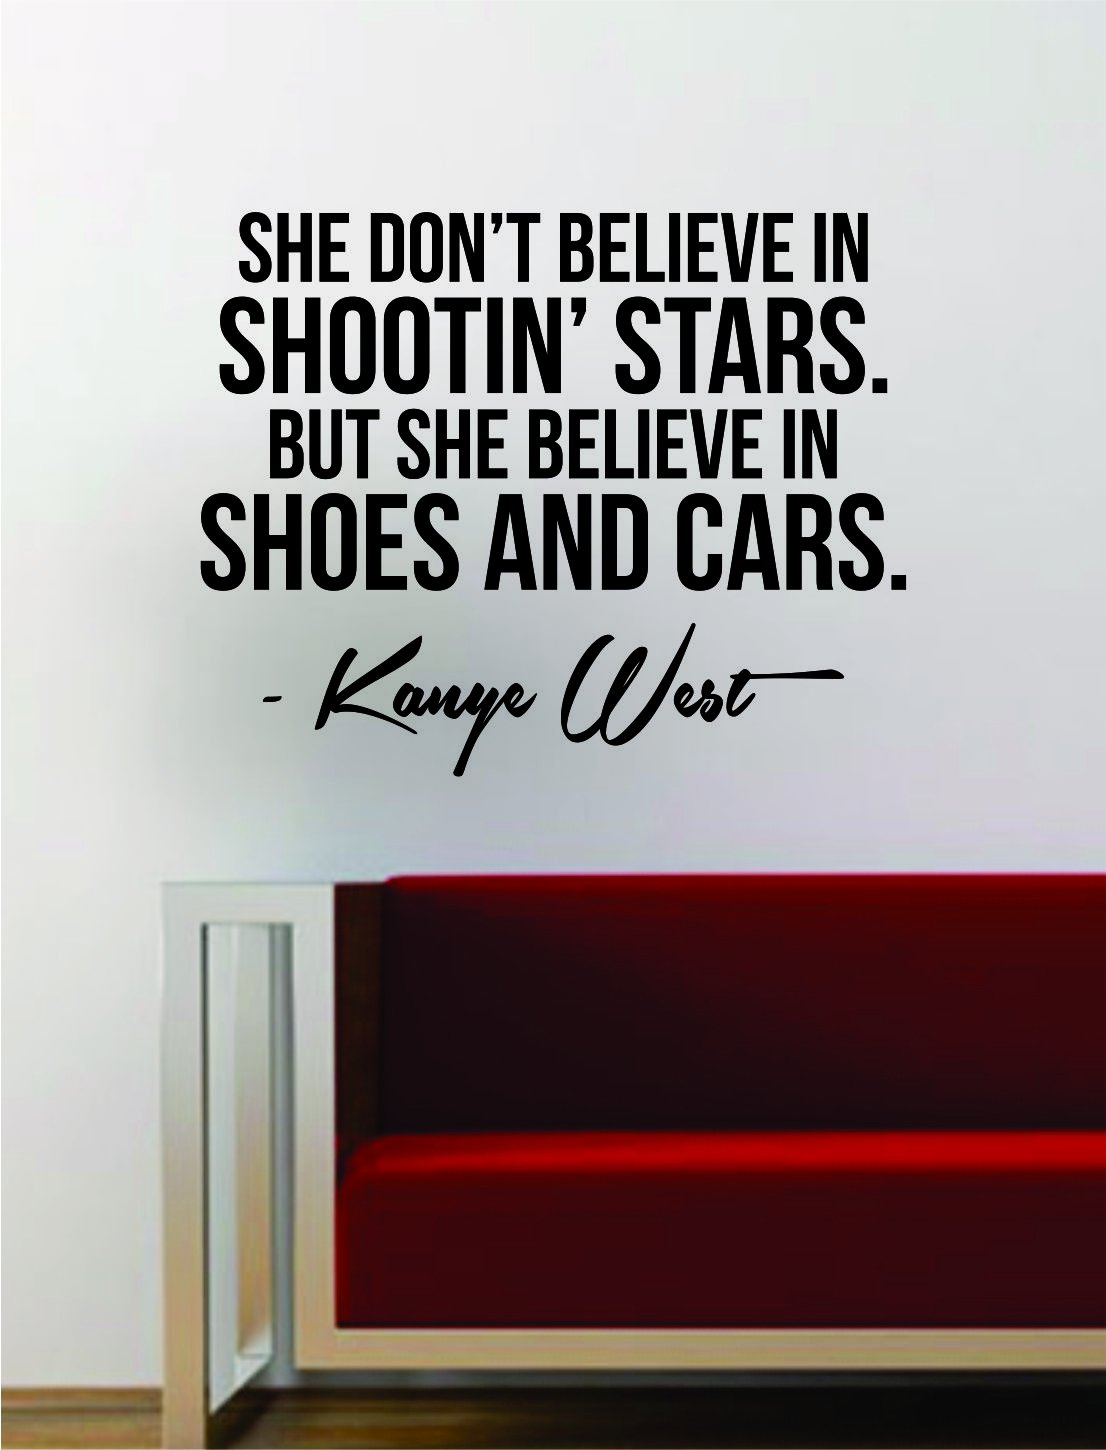 d0dcc115d2b27 Amazon.com: Kanye West Shoes and Cars Quote Decal Sticker Wall Vinyl ...